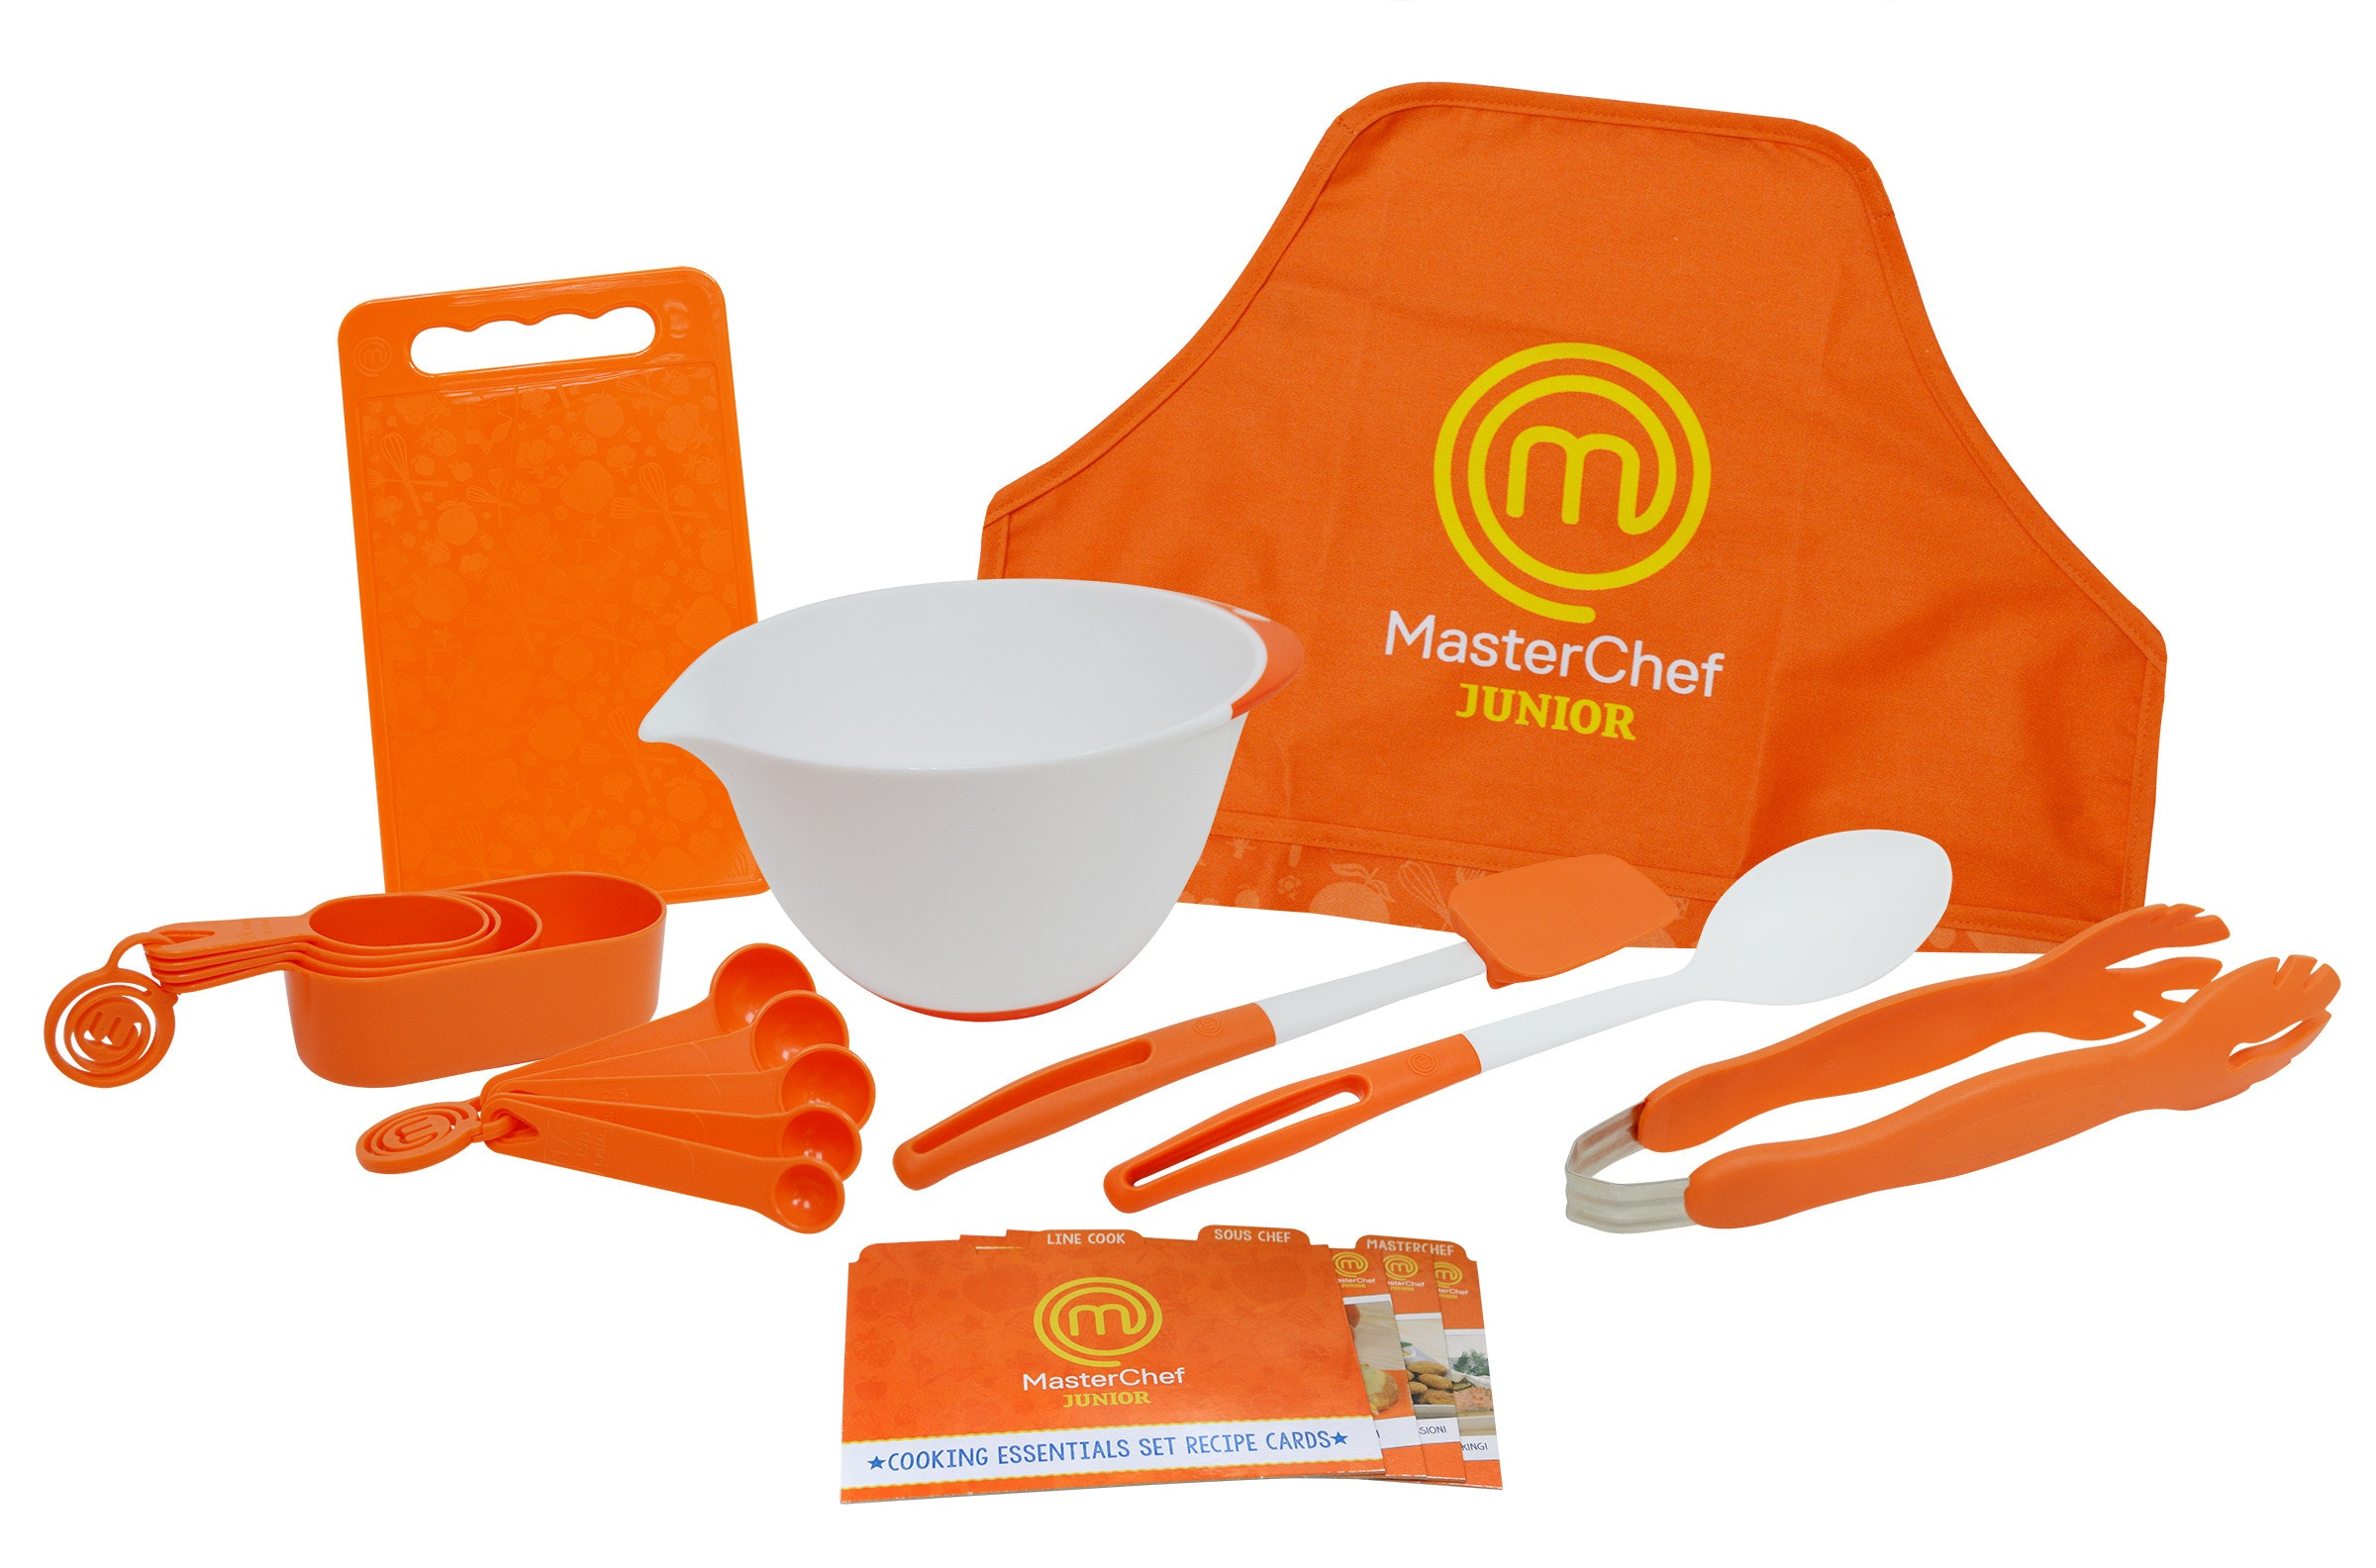 GW Baking: MasterChef Cooking Set sweepstakes